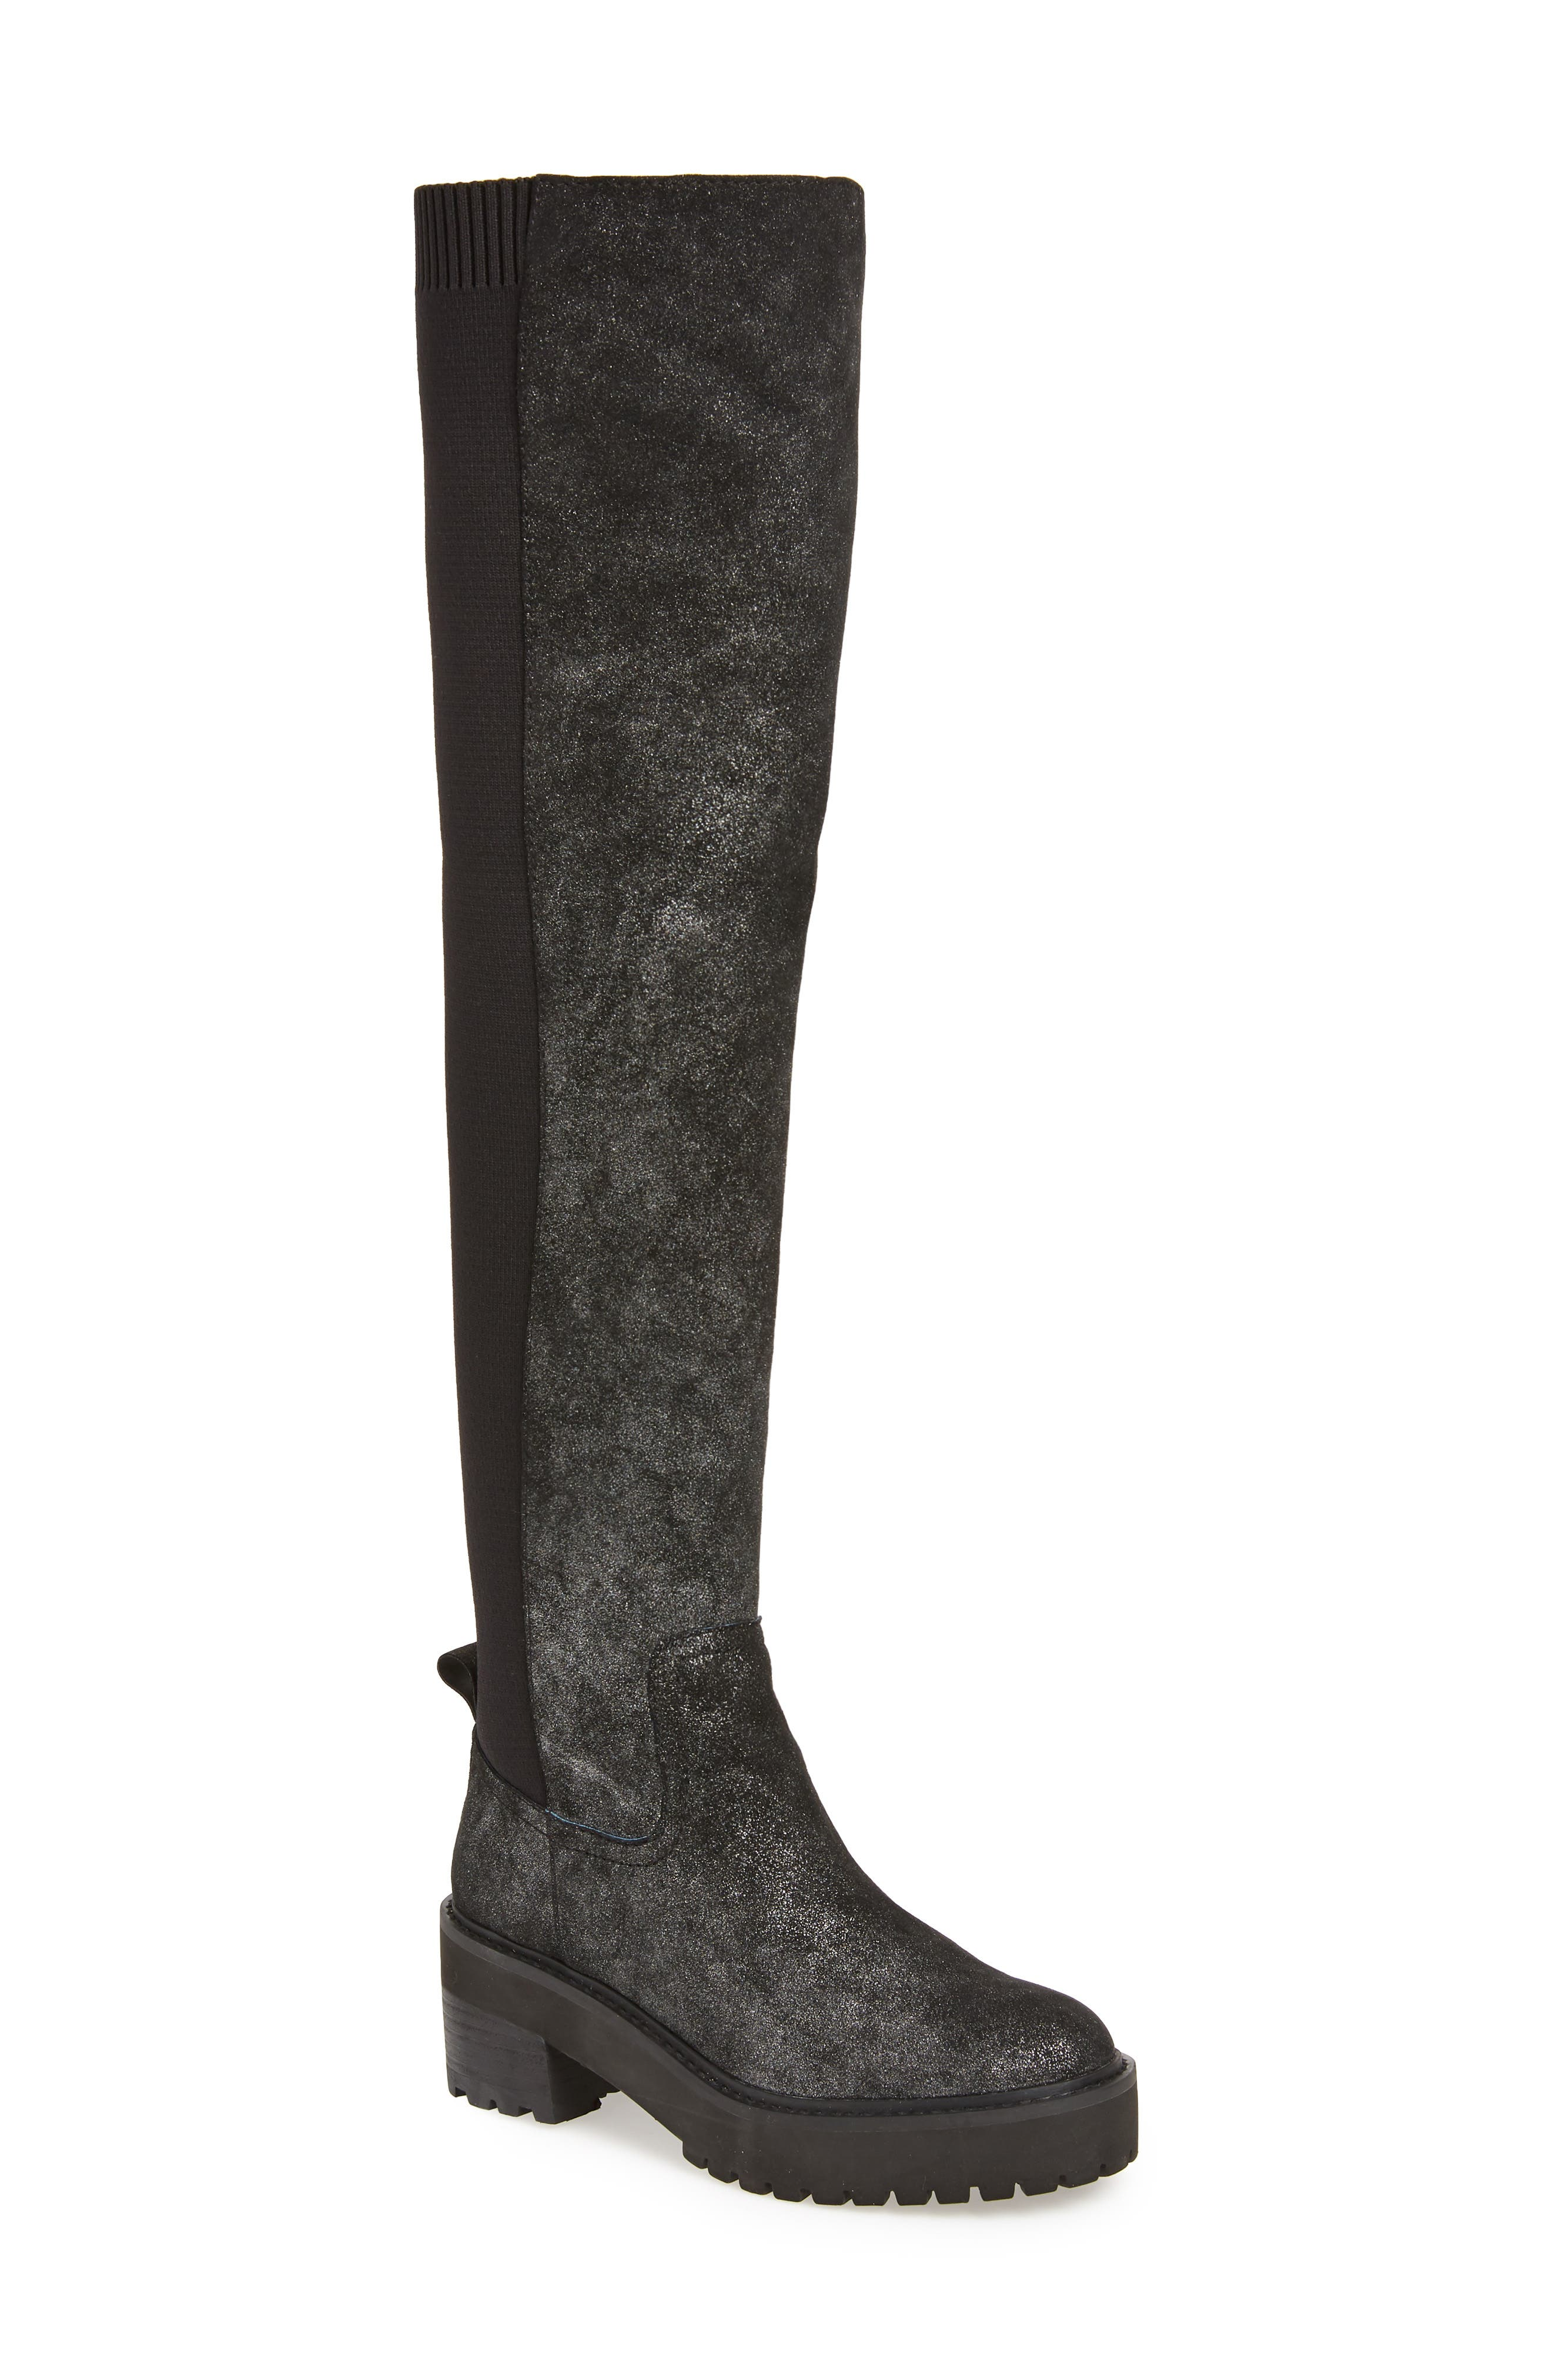 Lindy Over the Knee Boot,                             Main thumbnail 1, color,                             001